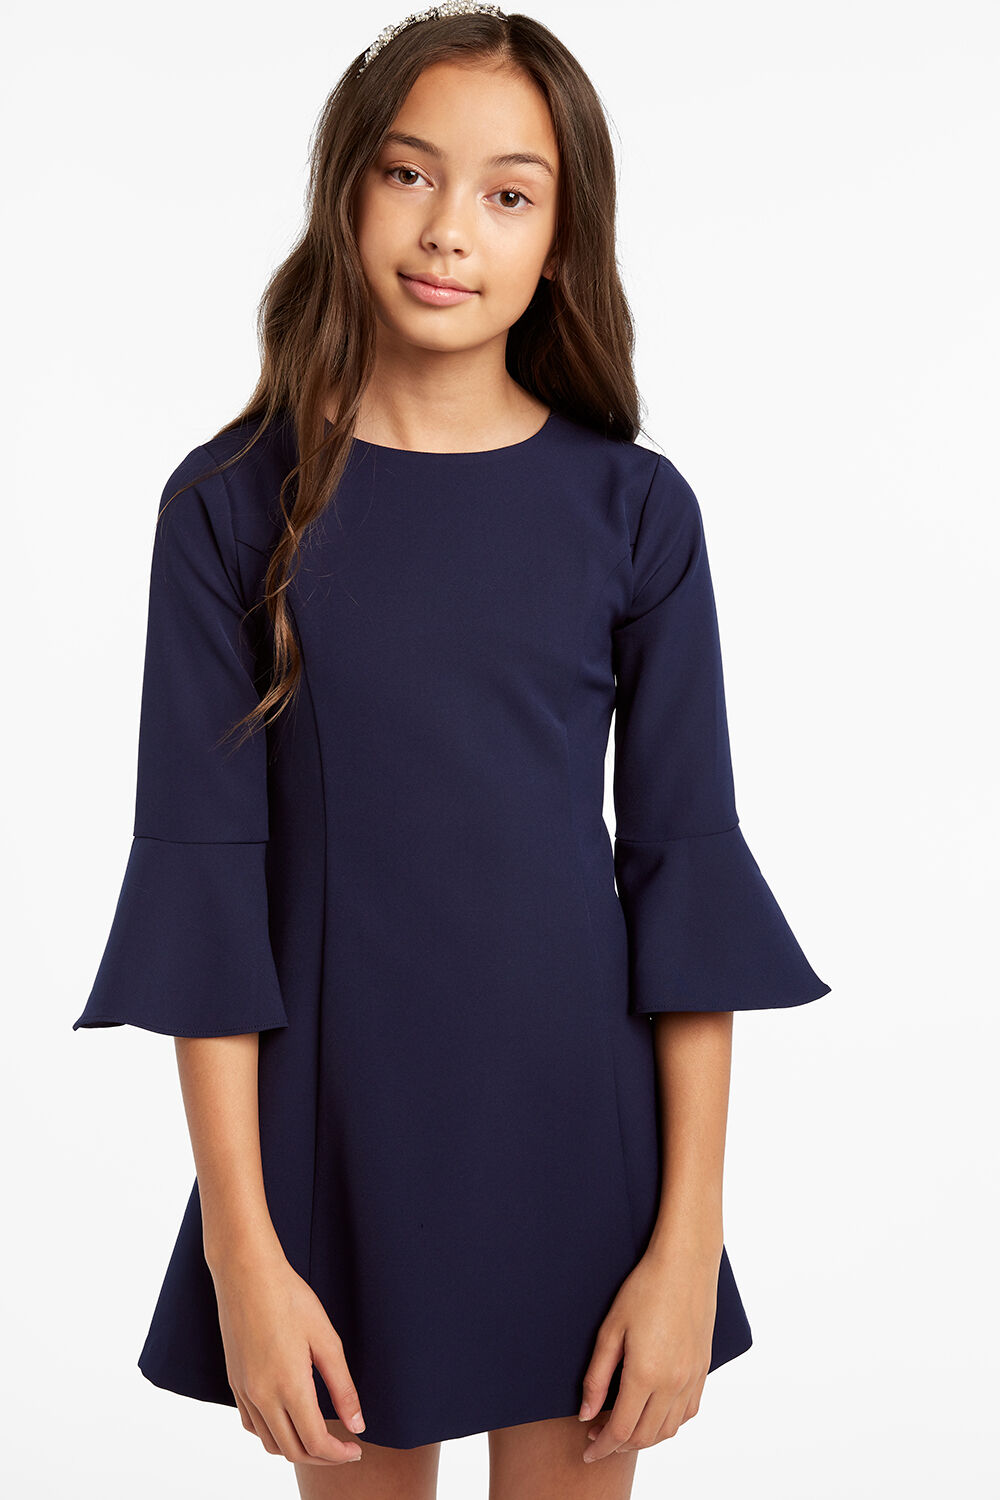 TWEEN GIRL JUNE PANEL DRESS in colour BLACK IRIS